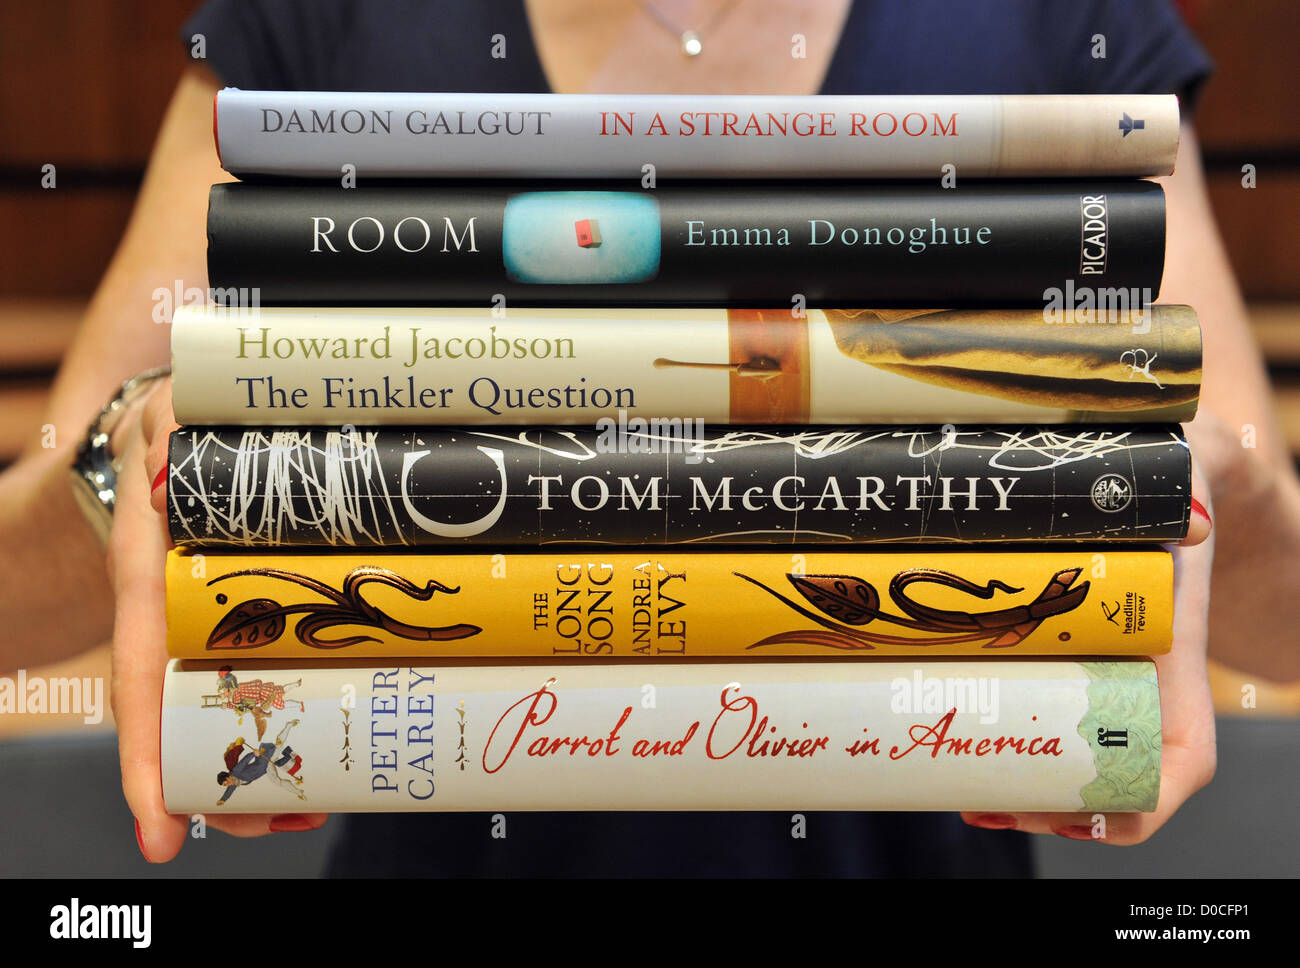 Peter Carey 'Parrot and Olivier in America' Emma Donoghue 'Room' Damon Galgut 'In a Strange - Stock Image